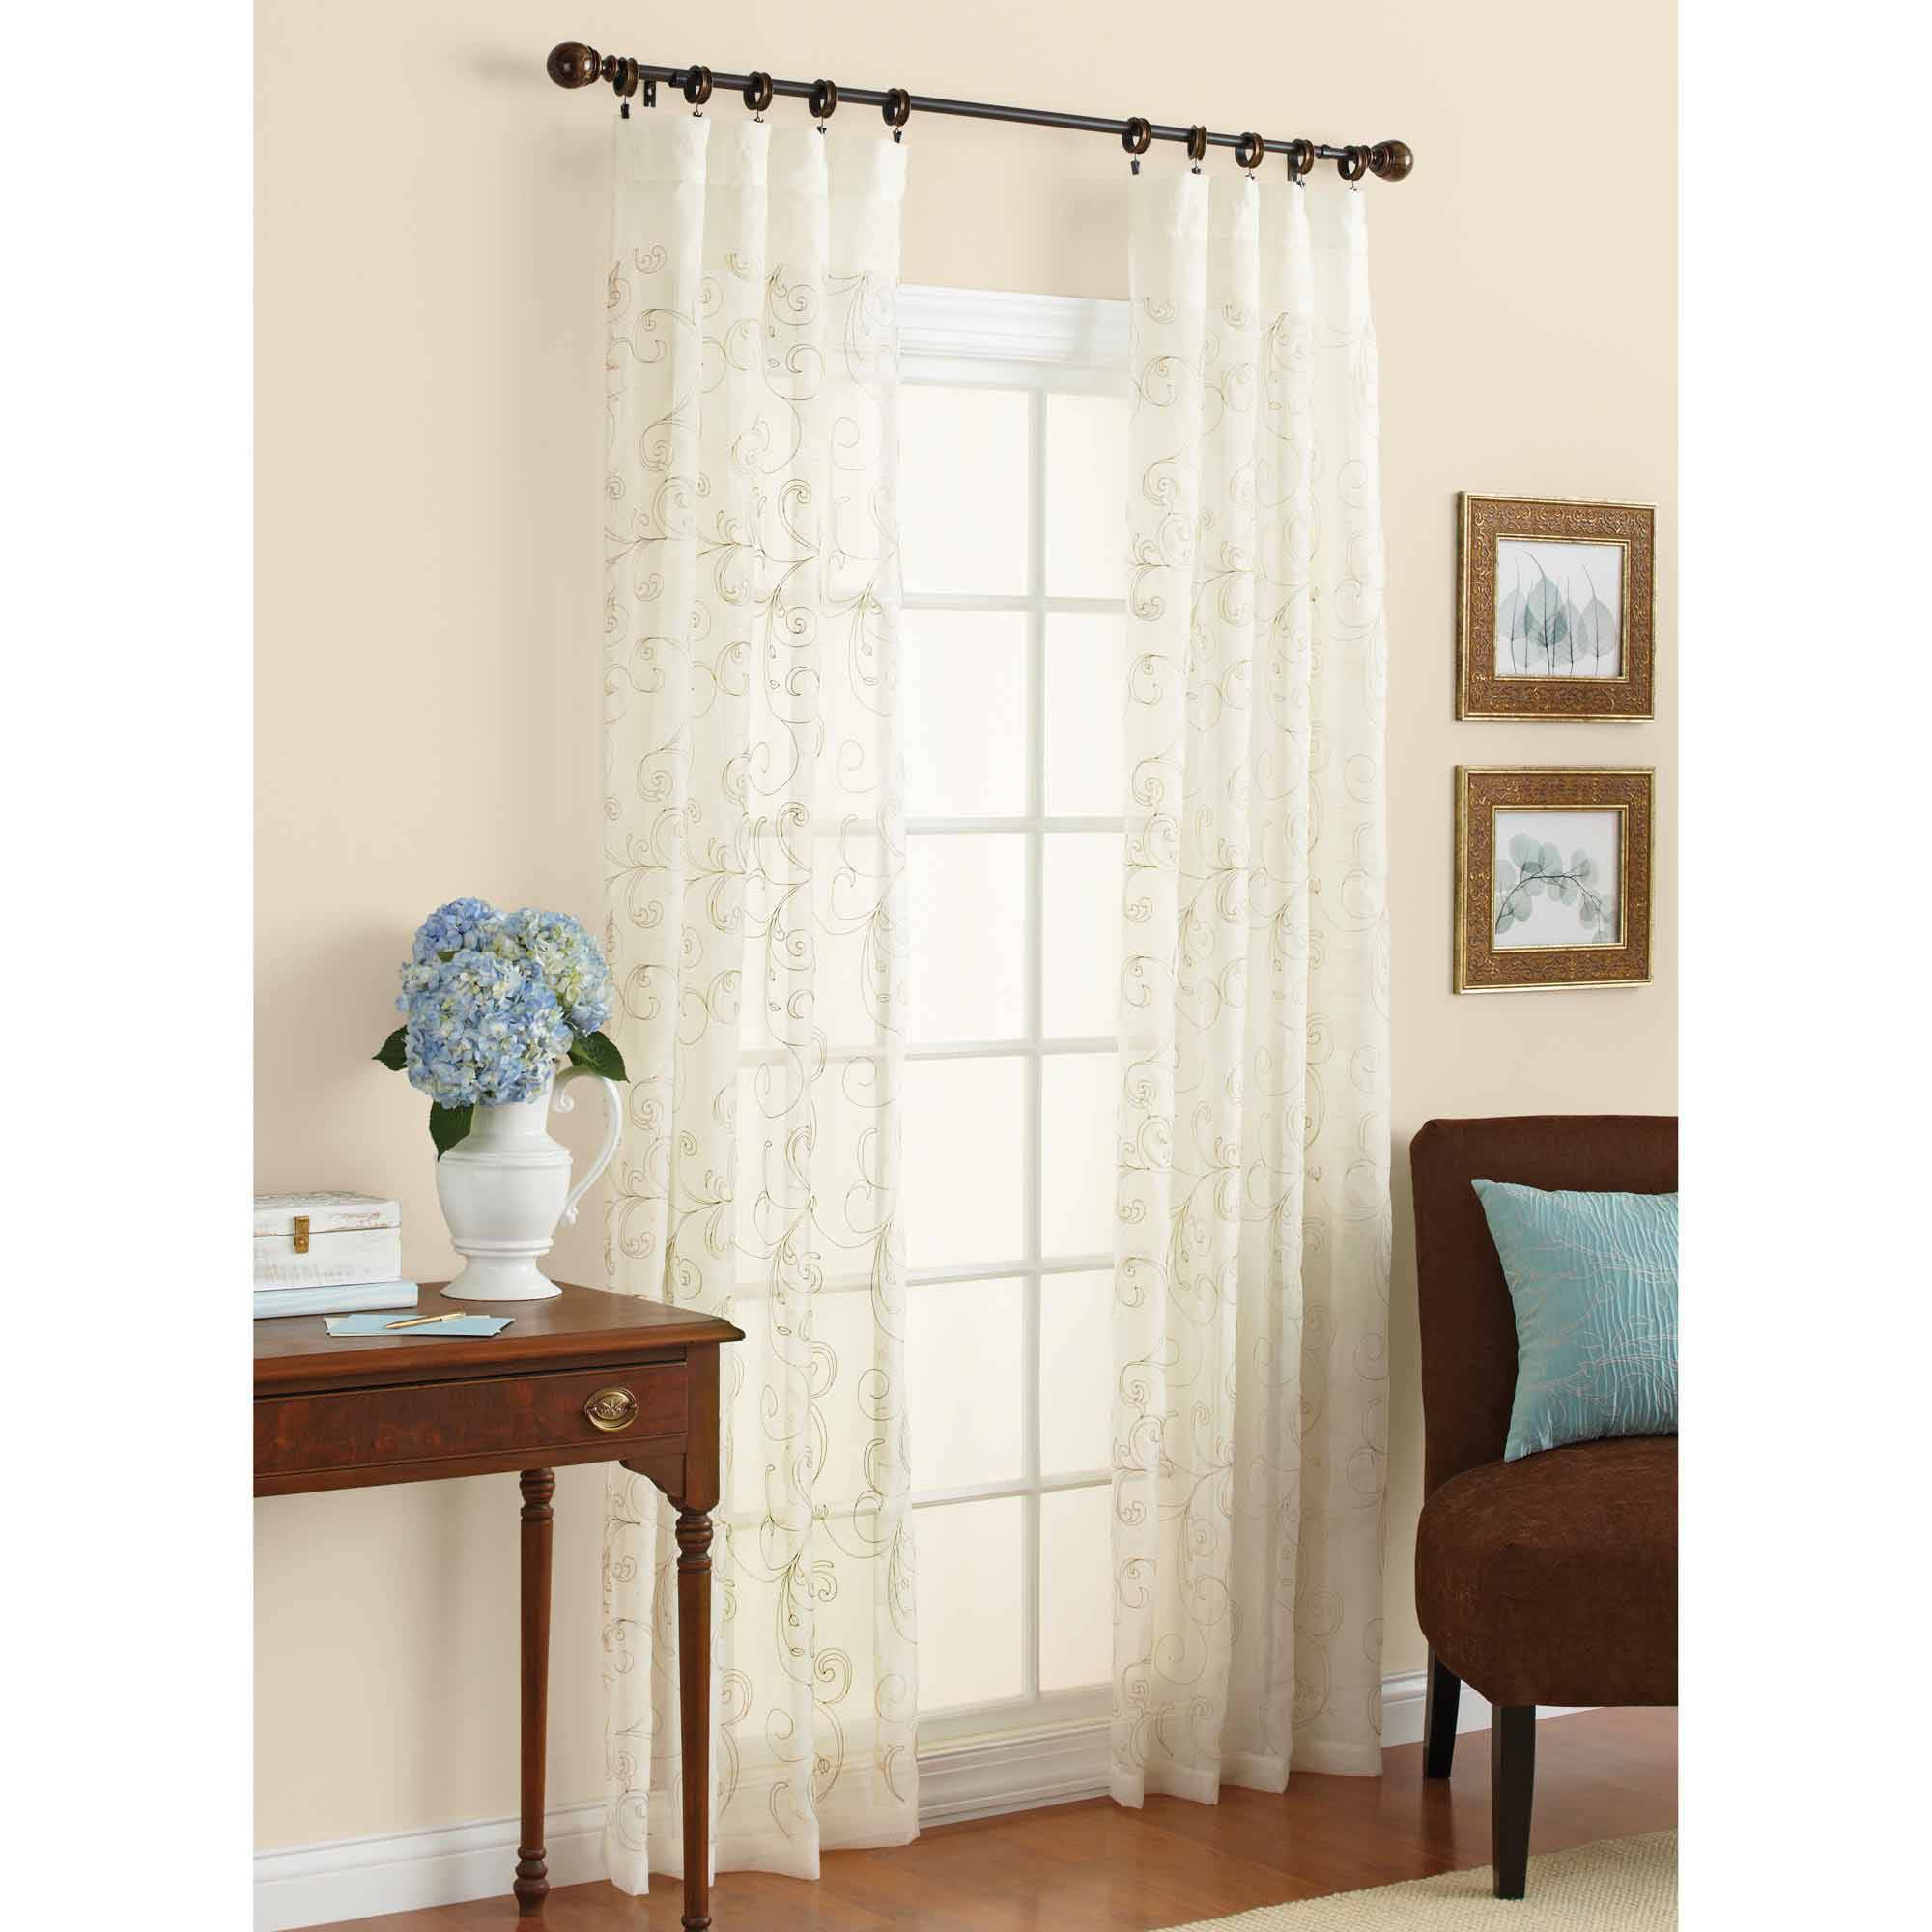 Better Homes and Gardens Embroidered Sheer Curtain Panel | eBay